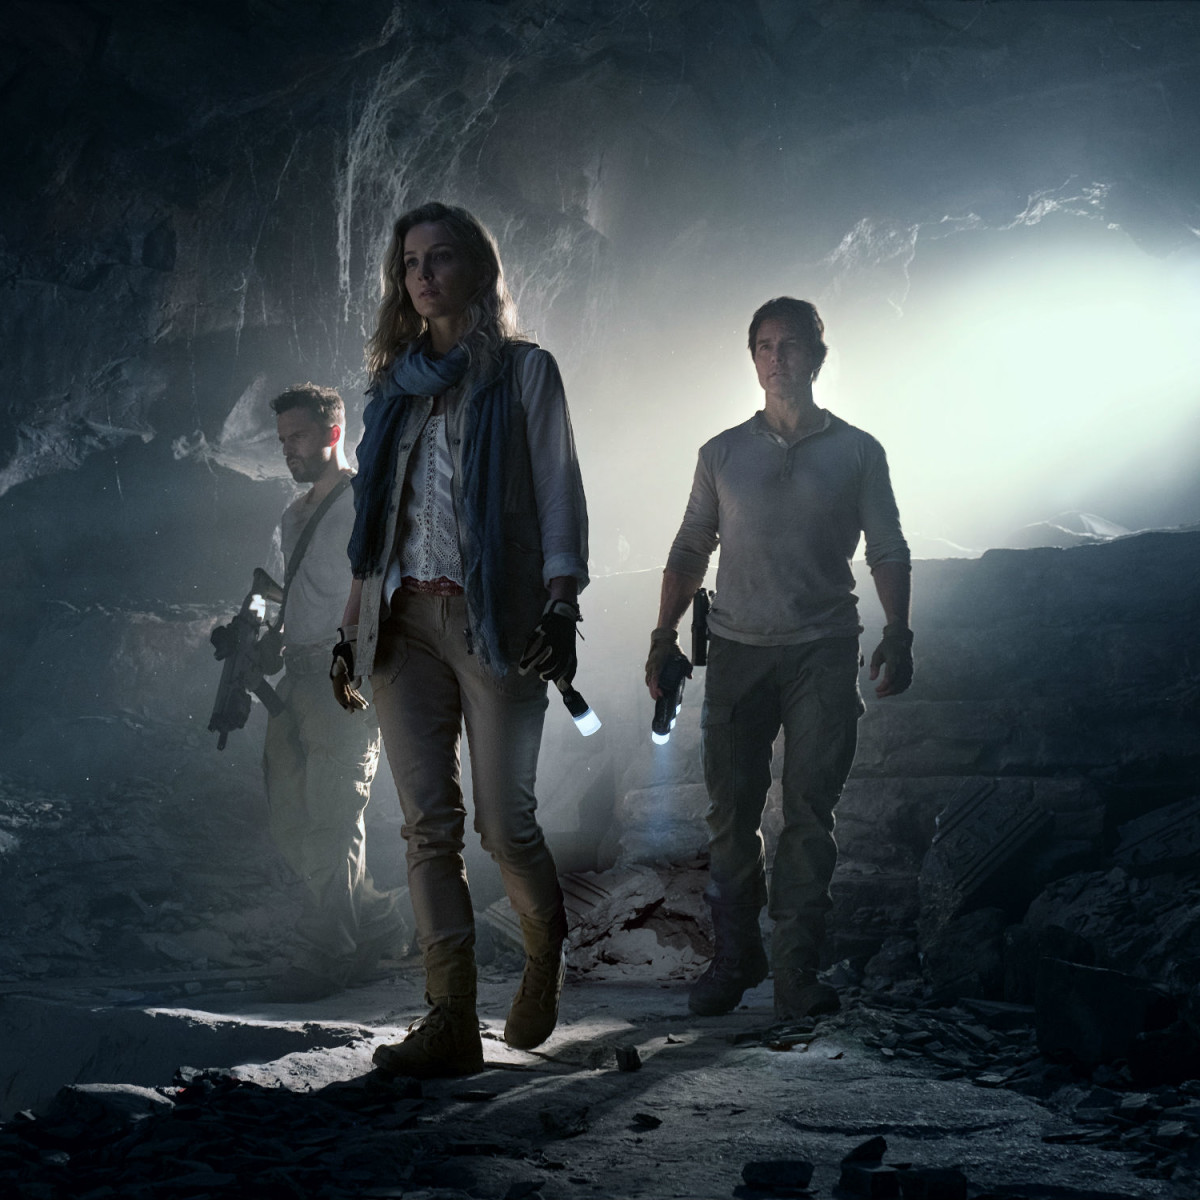 Jake Johnson, Annabelle Wallis, and Tom Cruise in The Mummy